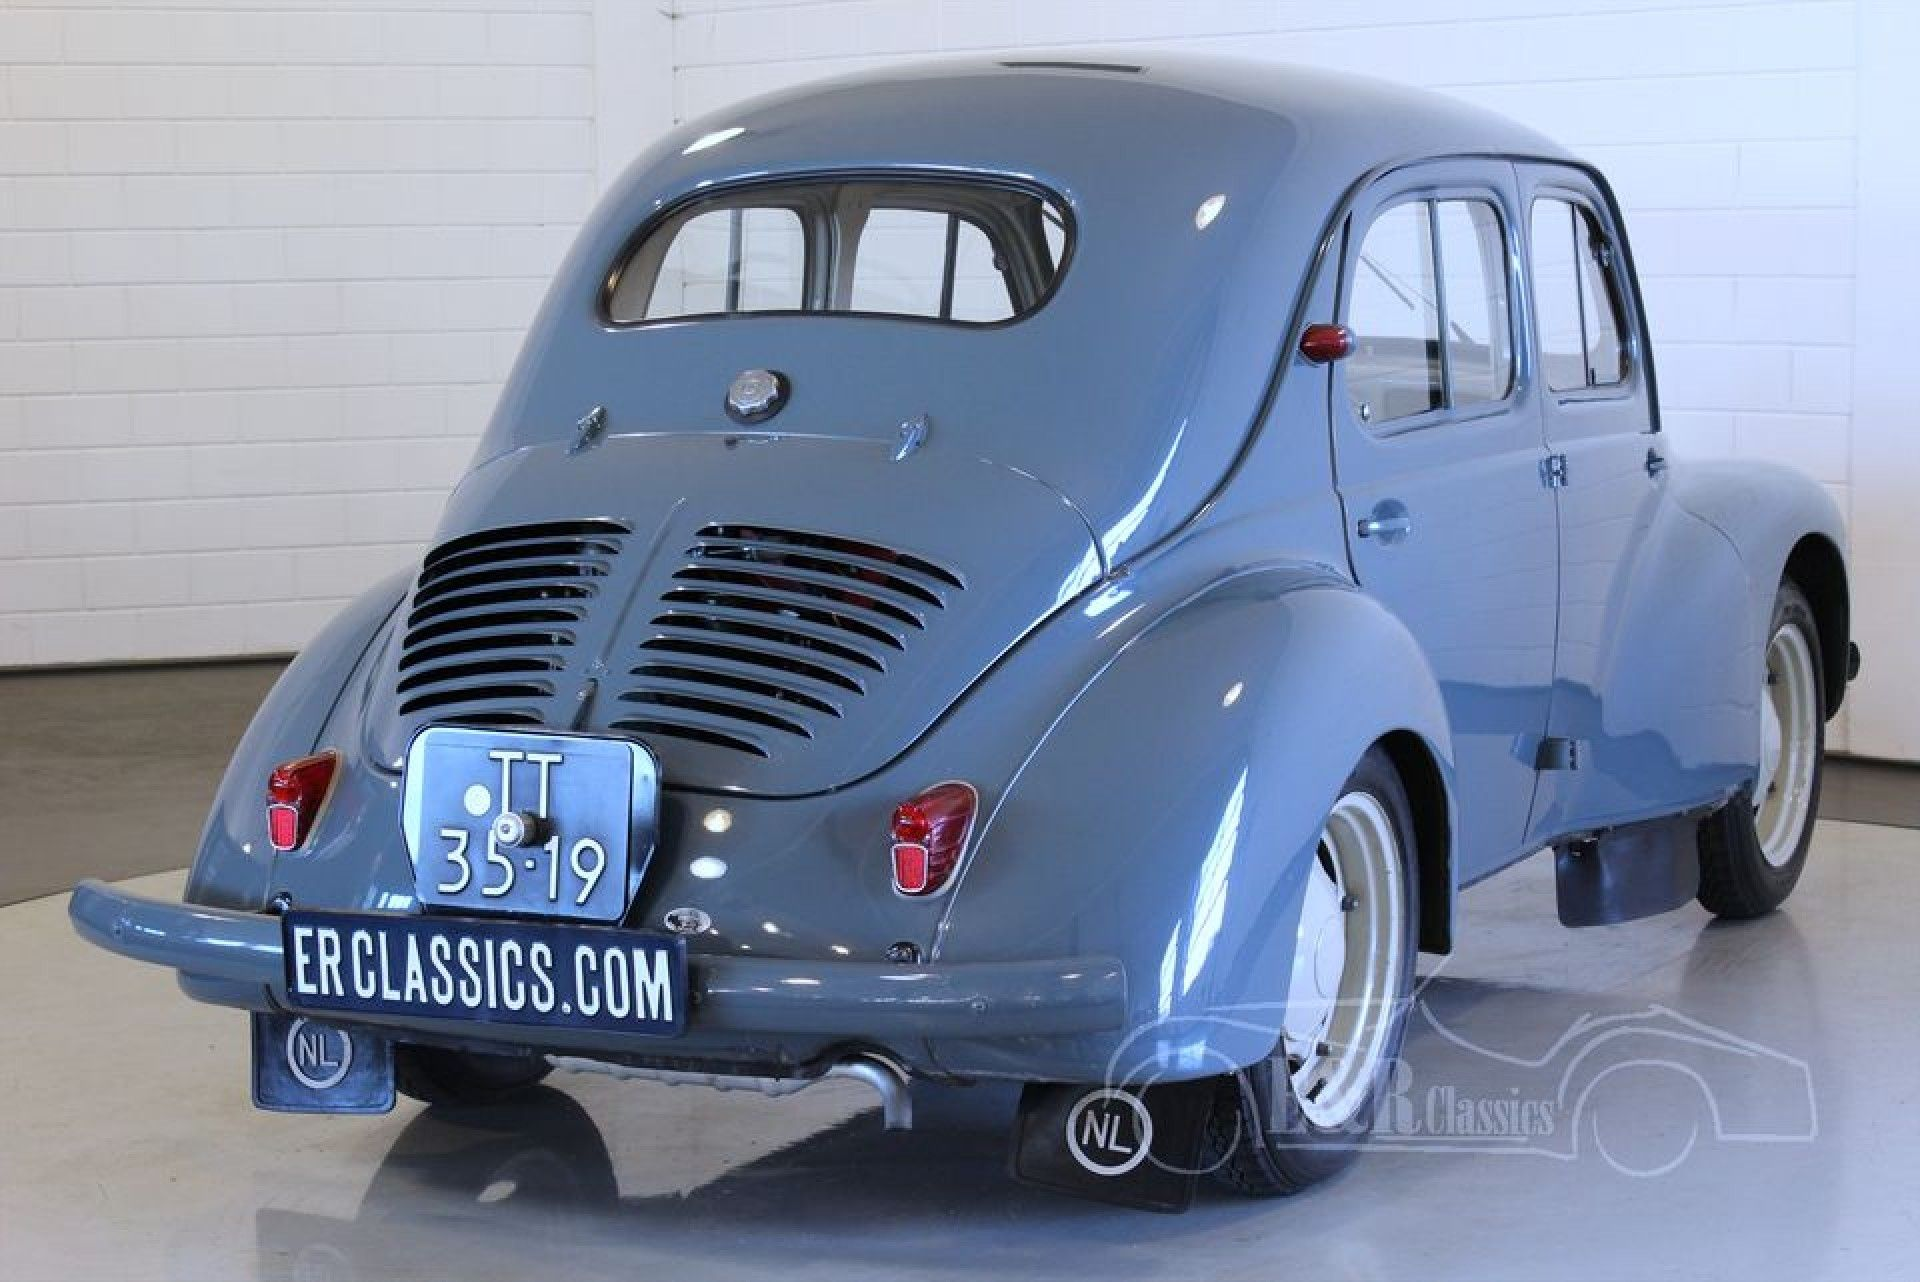 Renault 4cv 1956 For Sale At Erclassics Renault Renault 4 Classic Cars